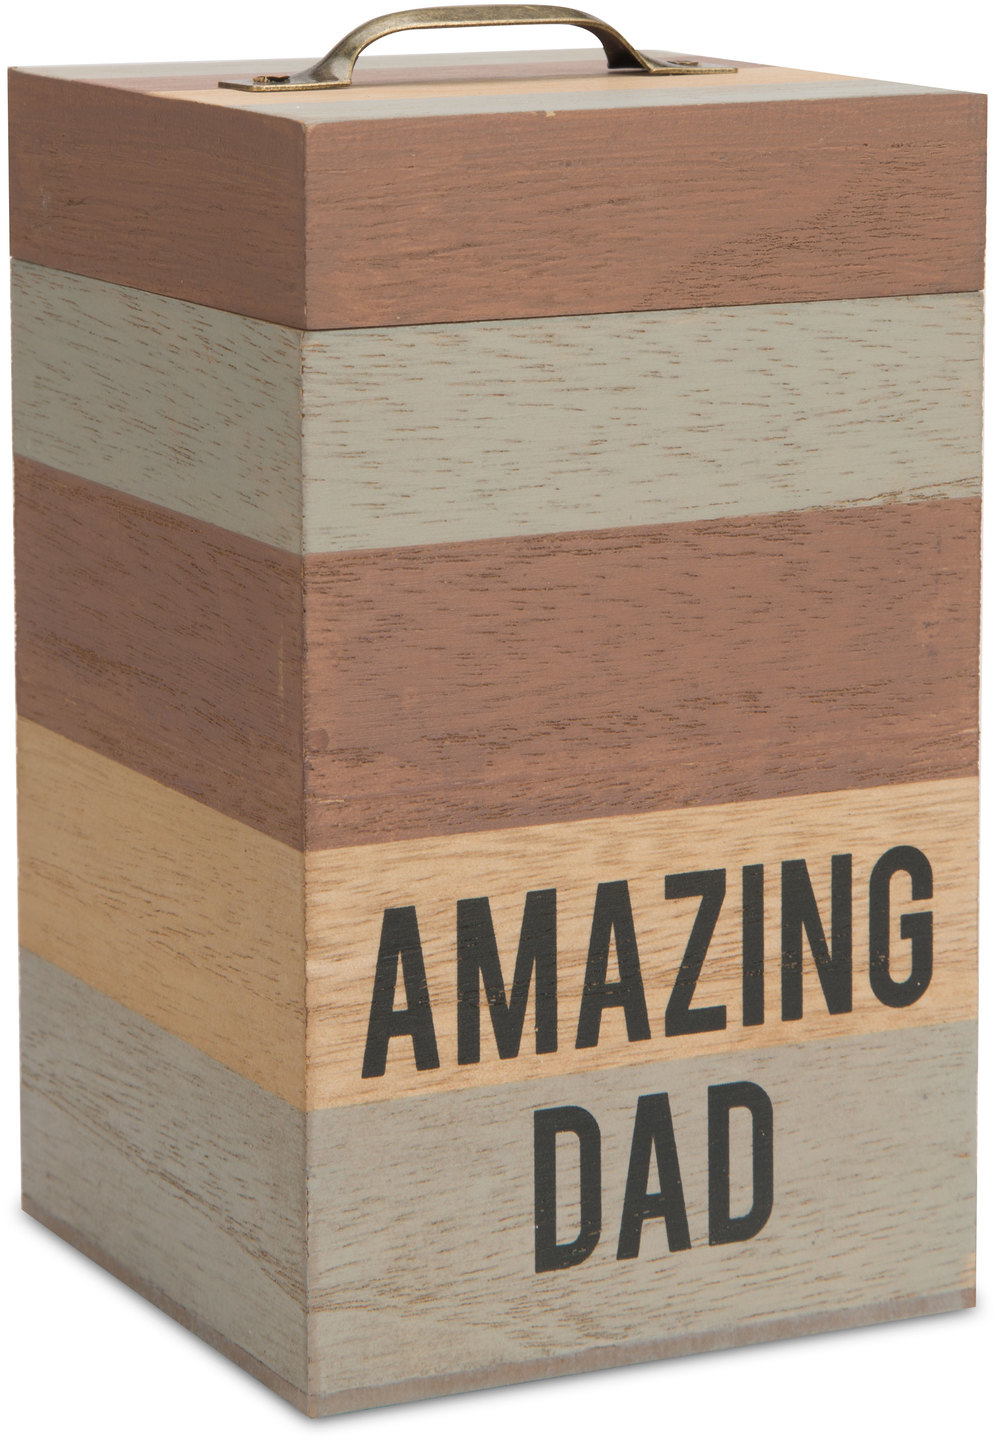 "Dad by Man Made - Dad - 6.25"" MDF Container"